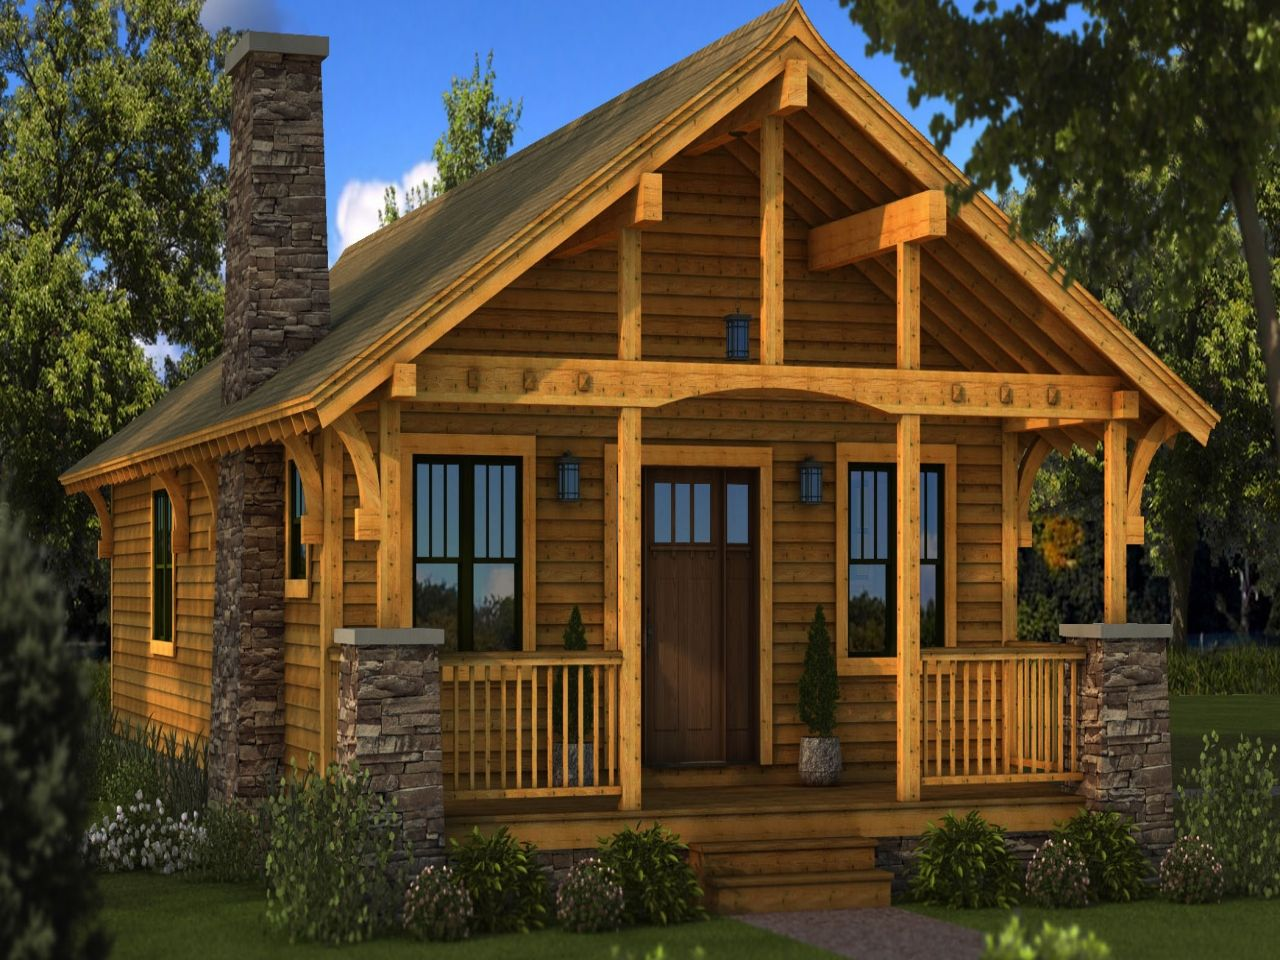 Small log cabin homes plans one story cabin plans for Single story log cabin homes